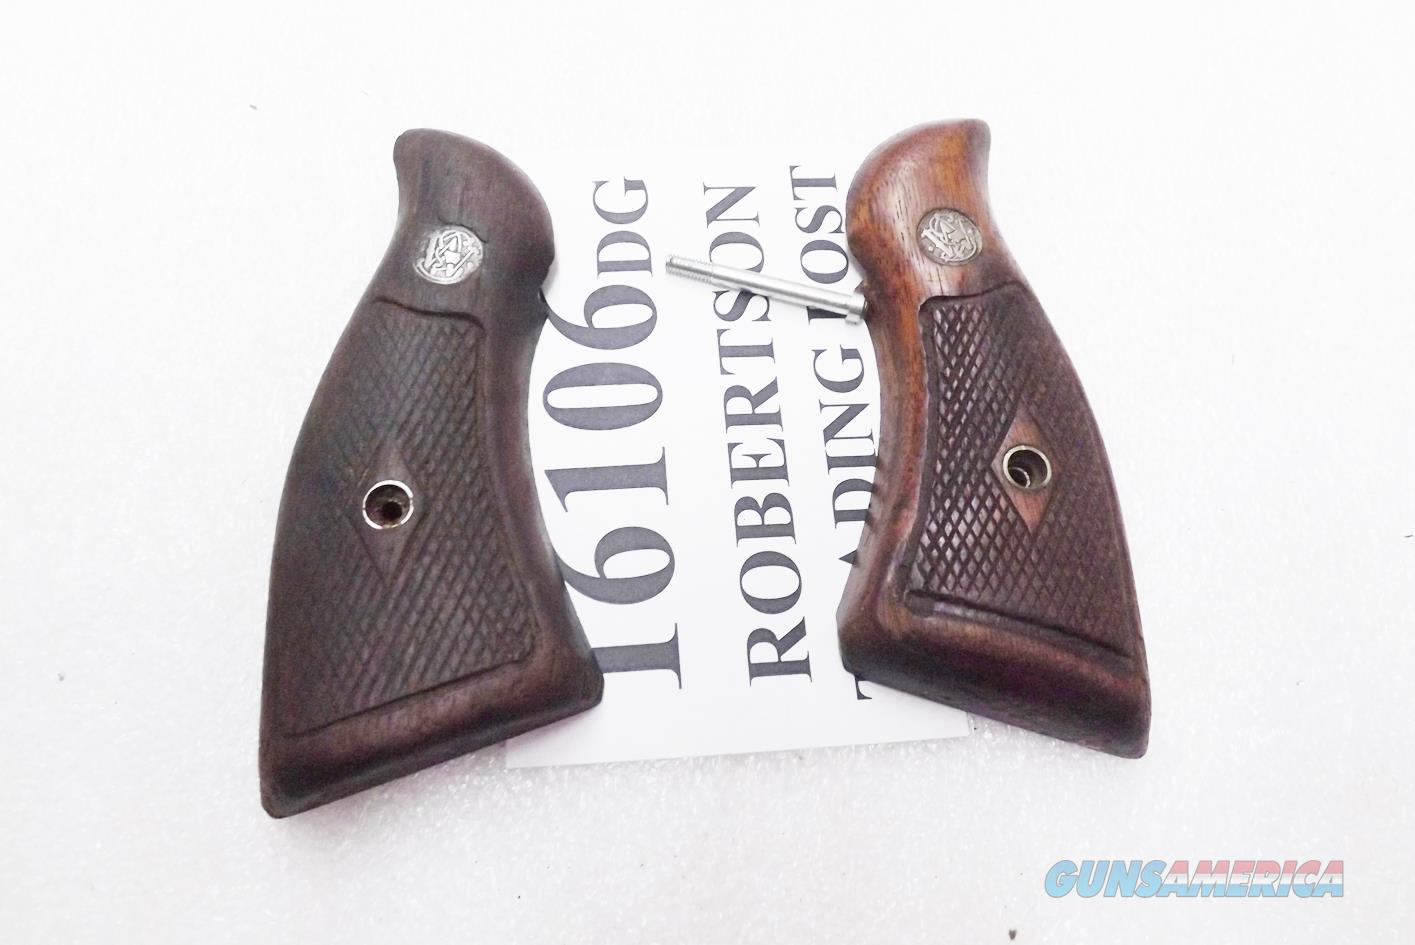 Smith & Wesson Factory Grips K L Frame Square Butt Revolvers Magna Service Diamond Walnut Good Condition 1960s Models 10 13 14 15 16 17 18 19   Non-Guns > Gunstocks, Grips & Wood